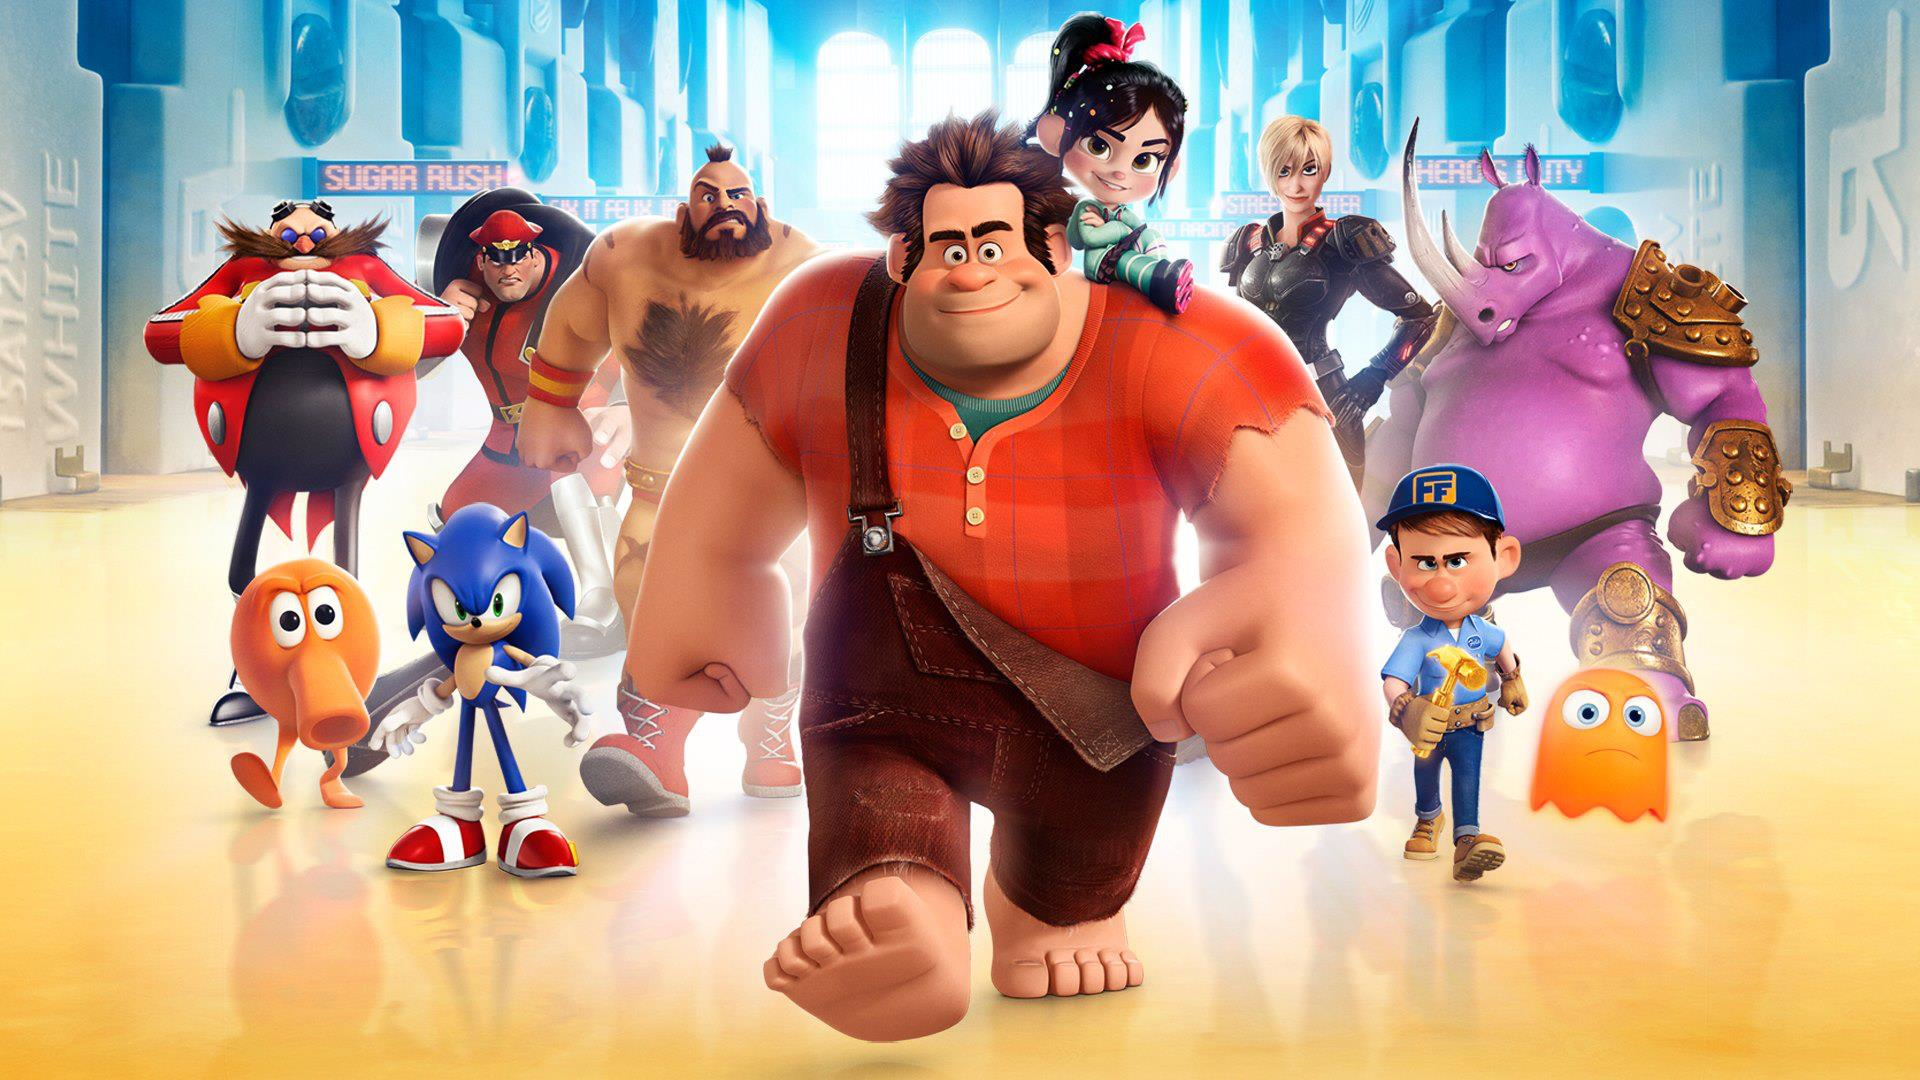 Ralph Breaks the Internet: Wreck-it Ralph 2 – 21st November 2018